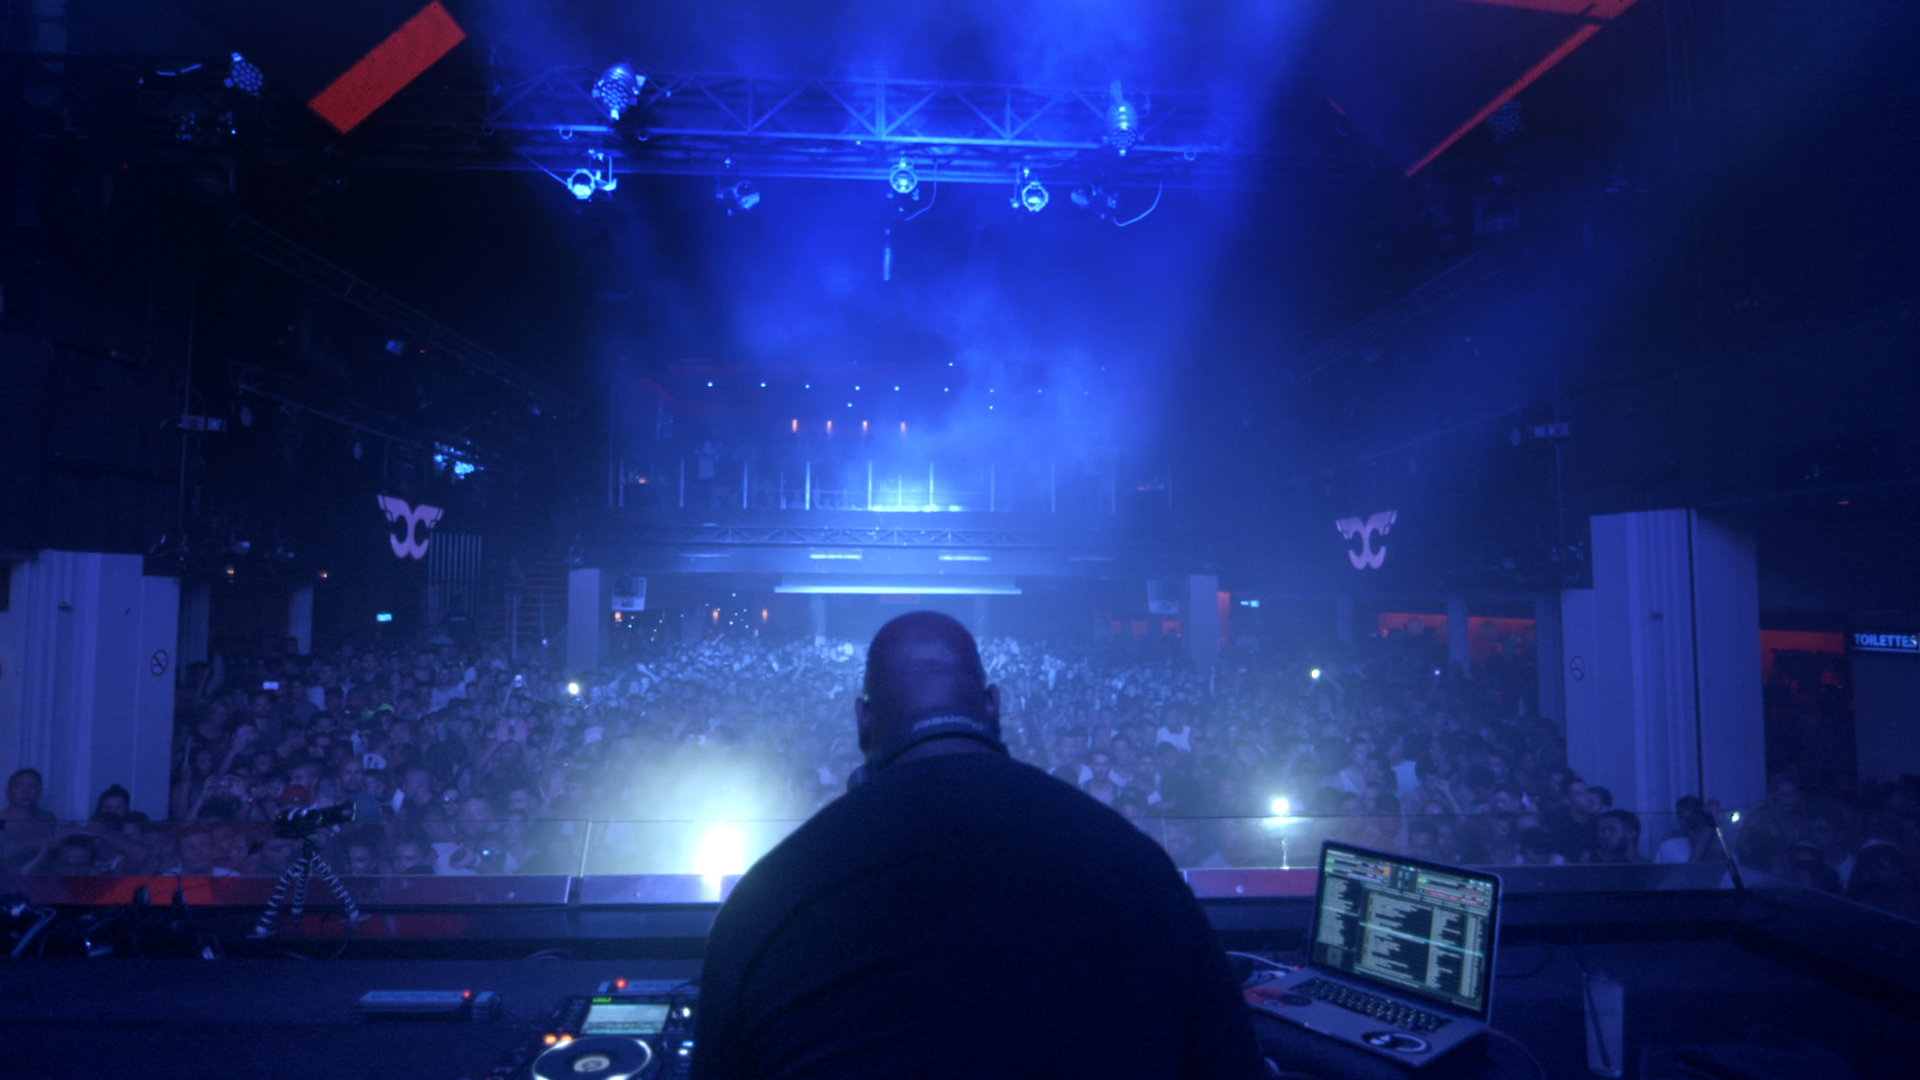 Carl Cox DJing at Ultra Music Festival Miami in WHAT WE STARTED - (c) Bert Marcus Productions